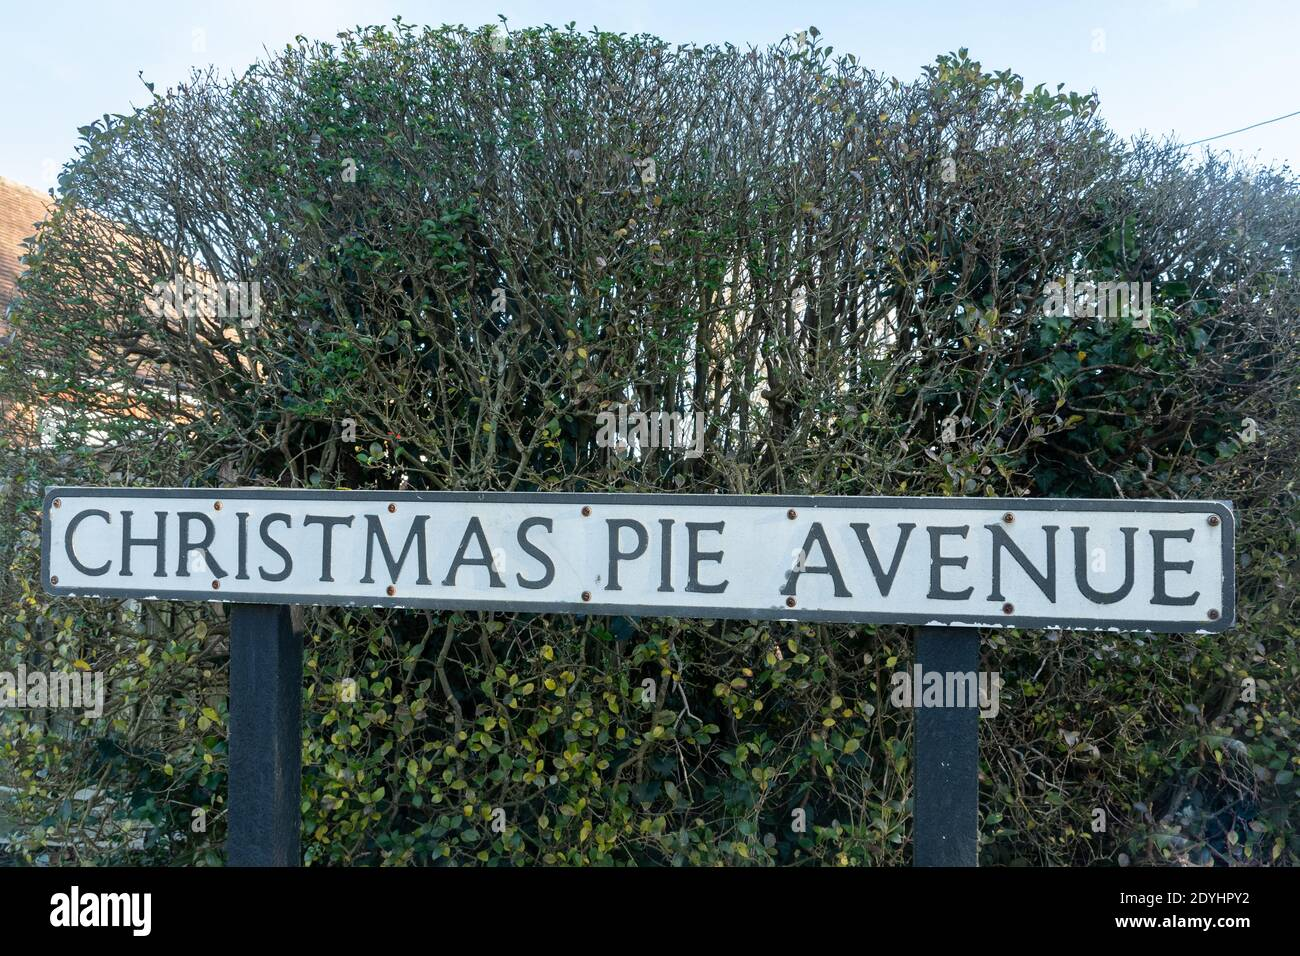 christmas-pie-avenue-road-sign-in-surrey-street-name-with-festive-season-theme-uk-2DYHPY2.jpg